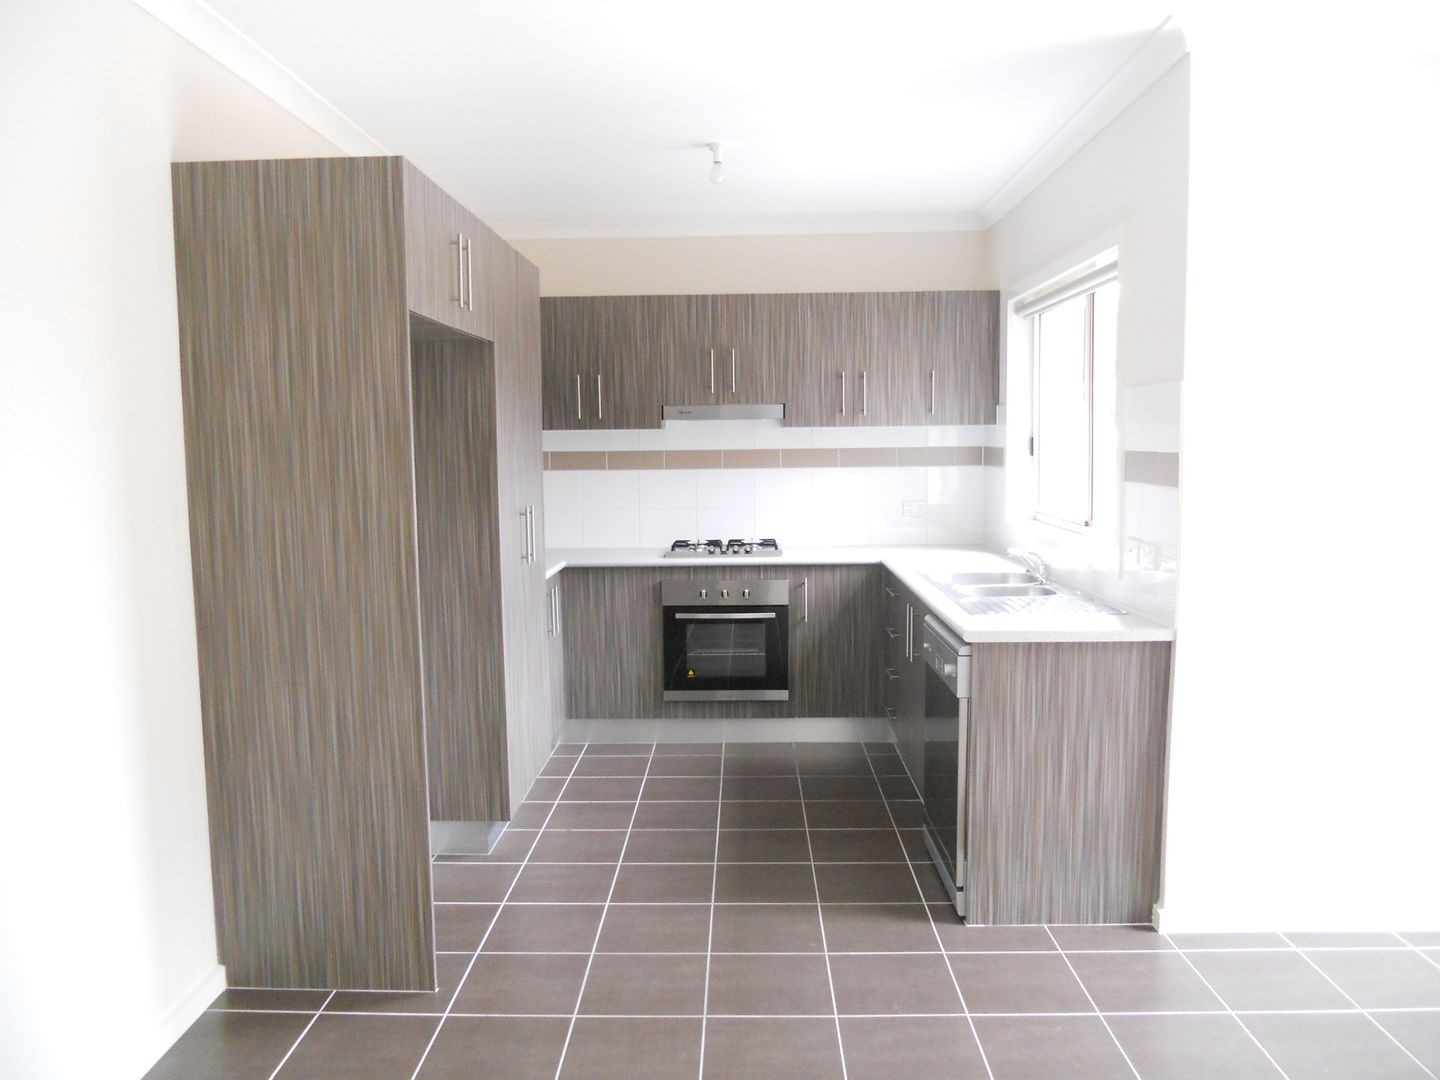 3 bedrooms Apartment / Unit / Flat in 1/49 Nicklaus Drive HOPPERS CROSSING VIC, 3029